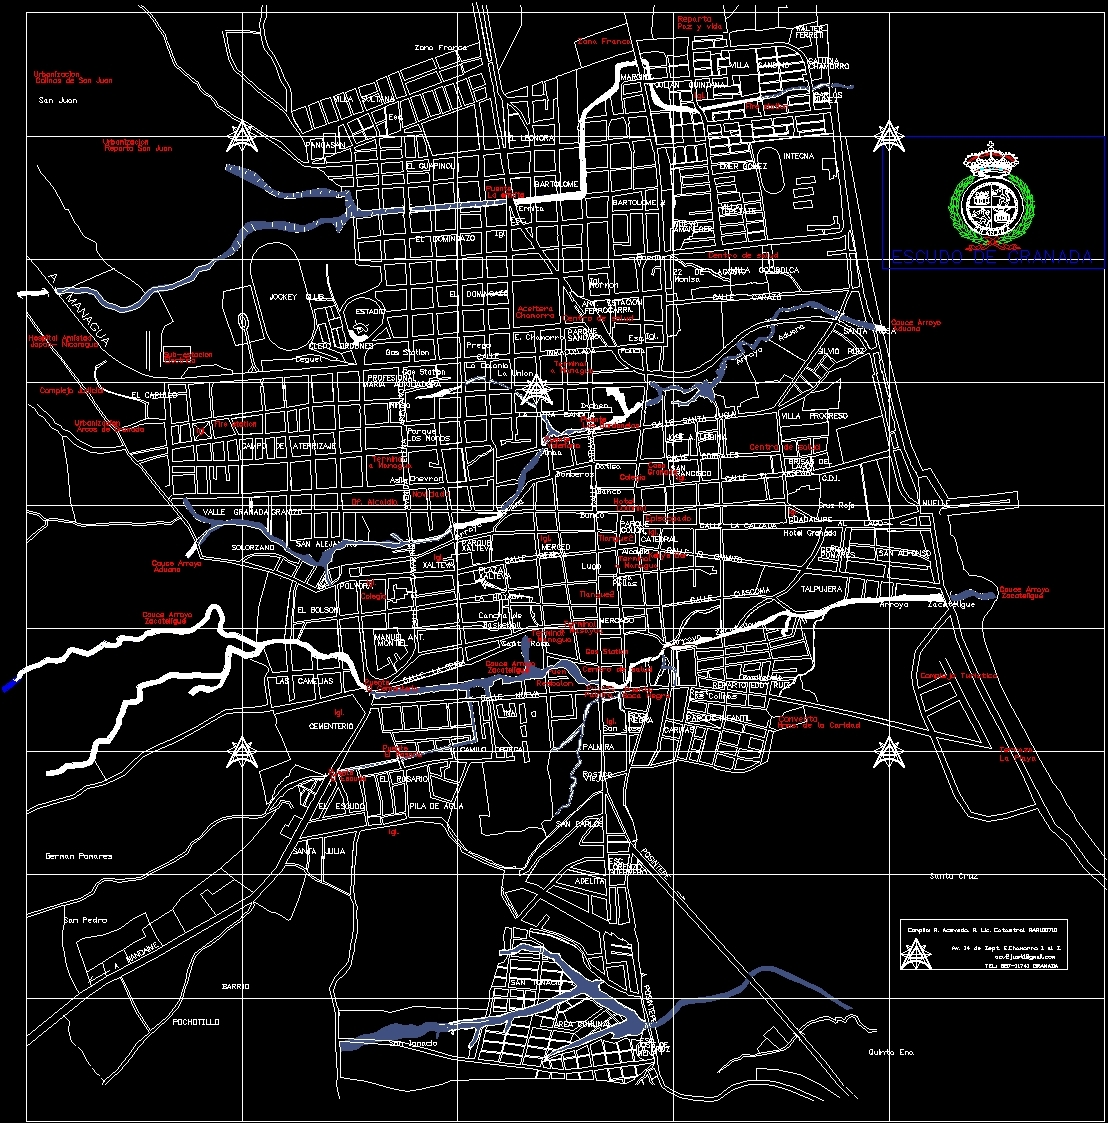 Granada city map dwg block for autocad designs cad file type dwg gumiabroncs Image collections